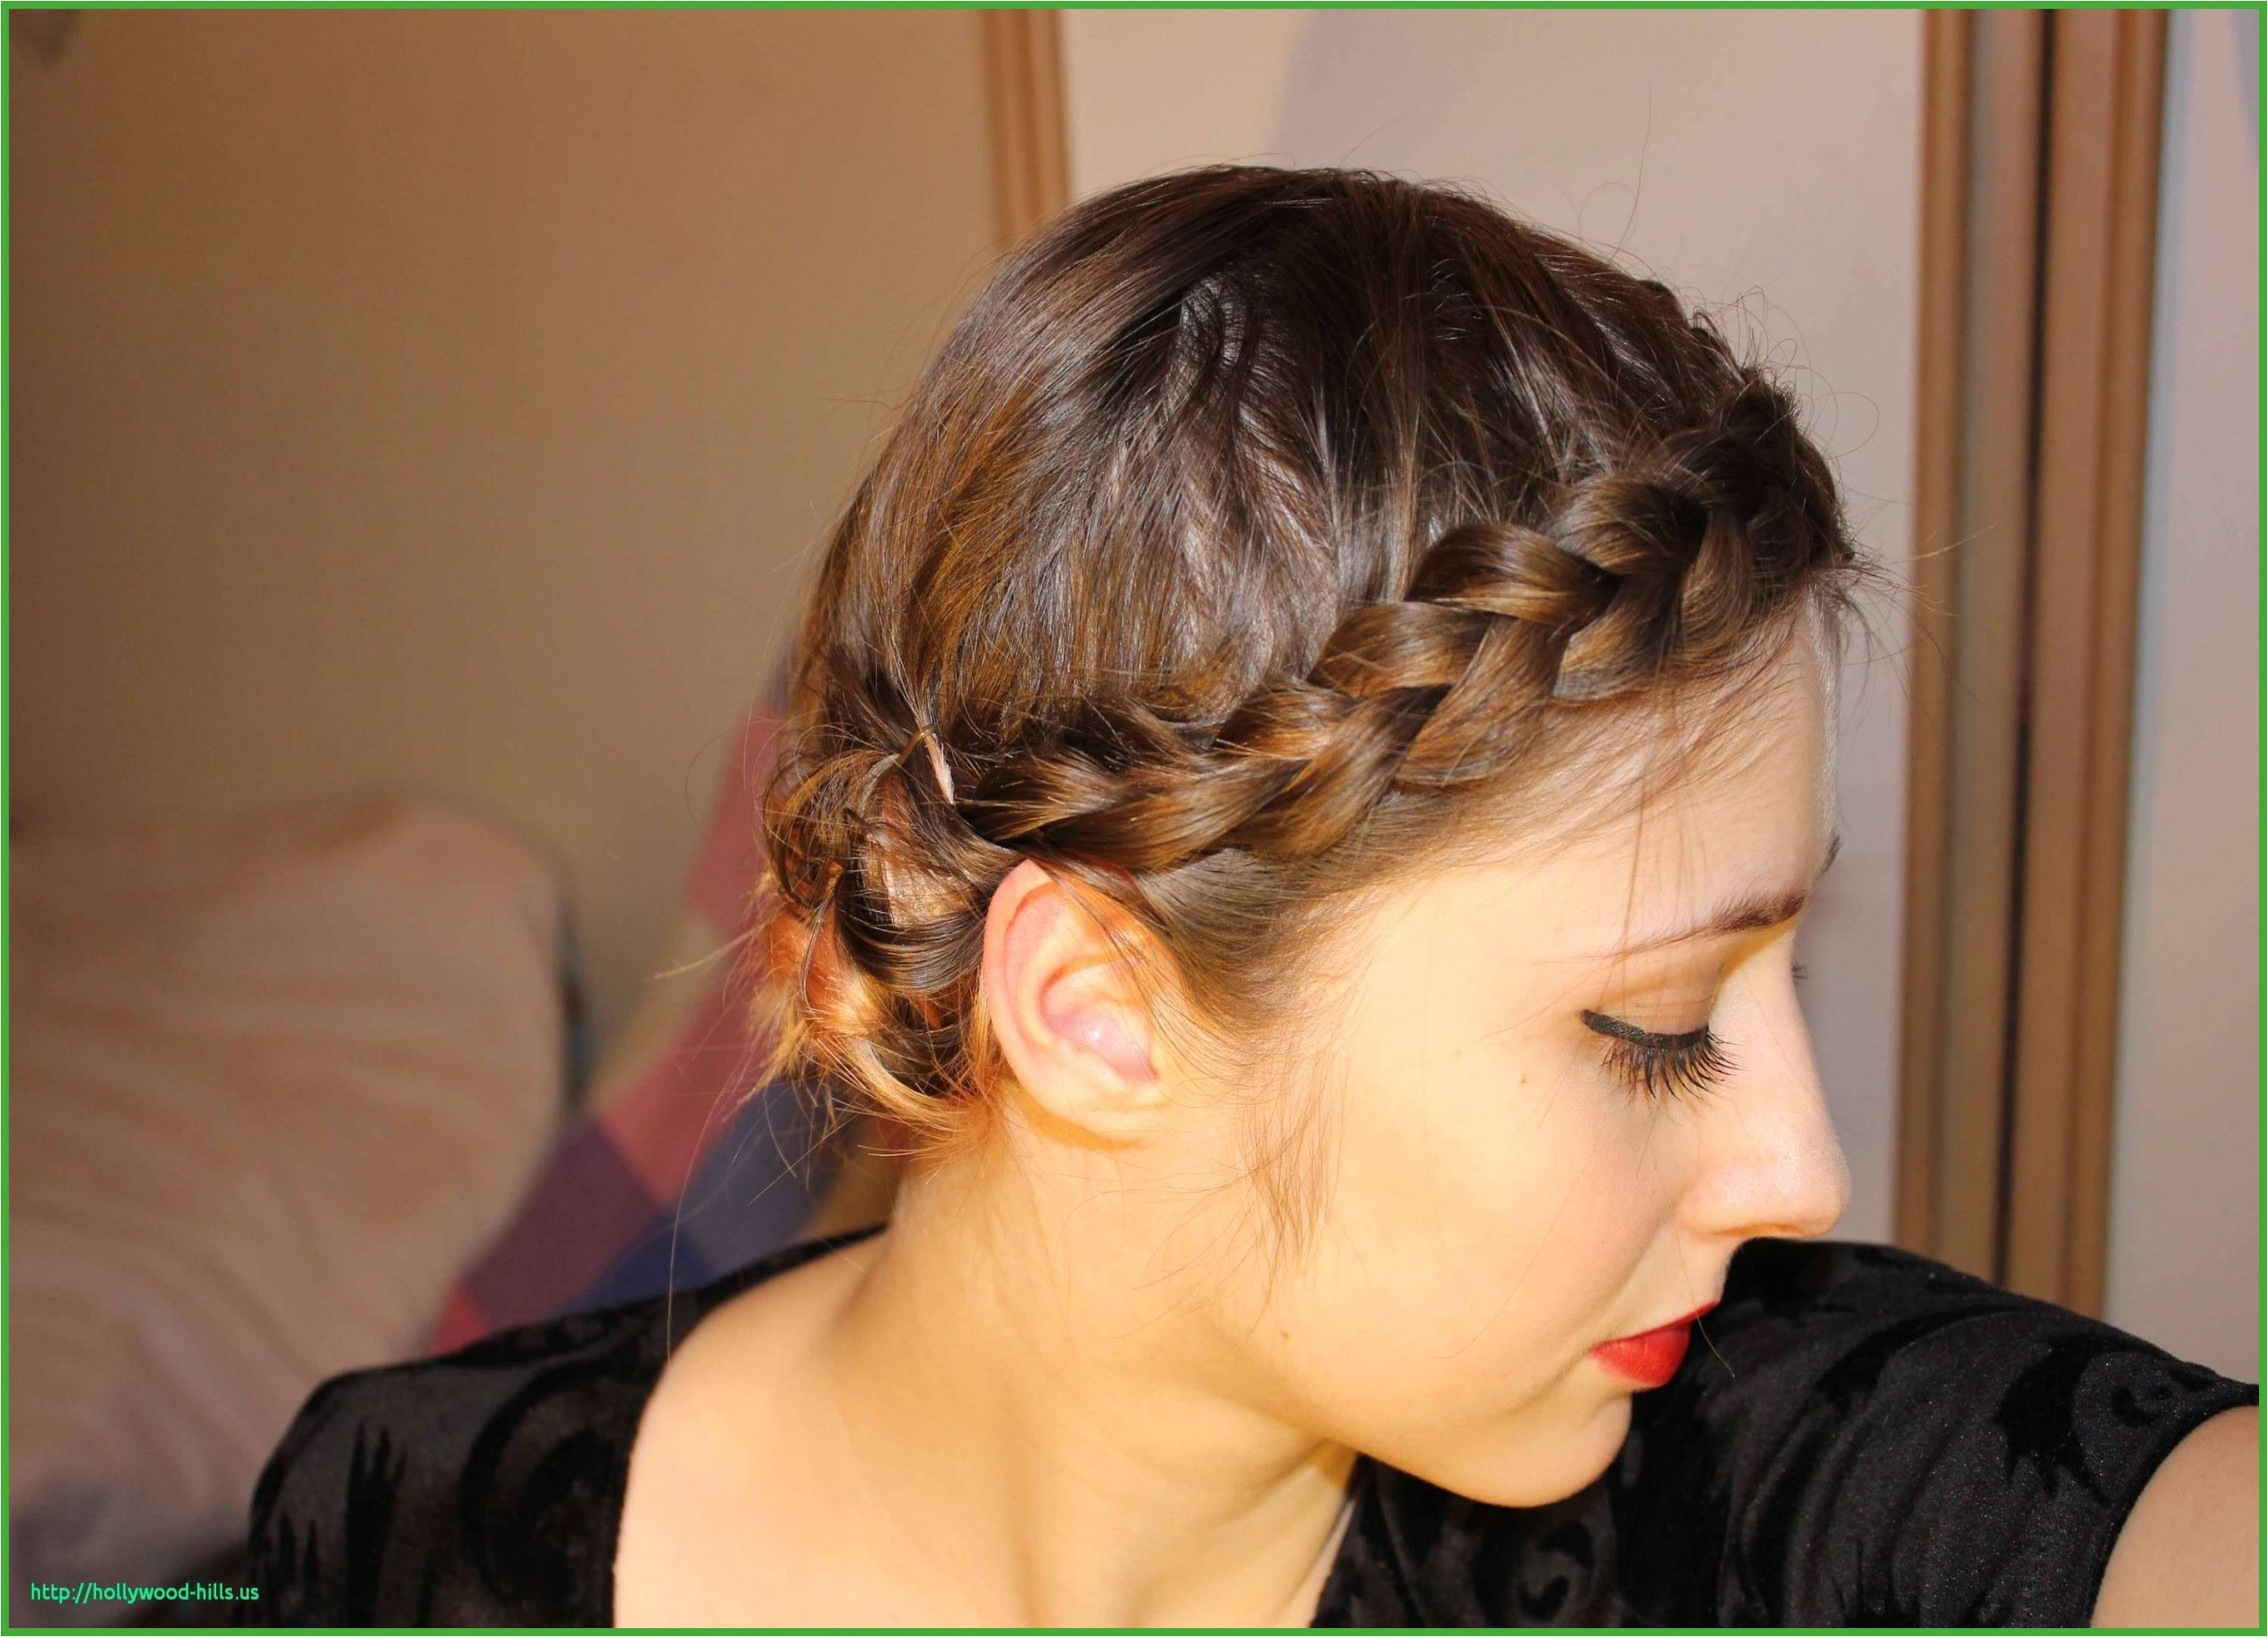 Braided Hairstyles for Short Thin Hair Luxury Hairstyles for Thin Hair Braids Beautiful Easy Braided Updo